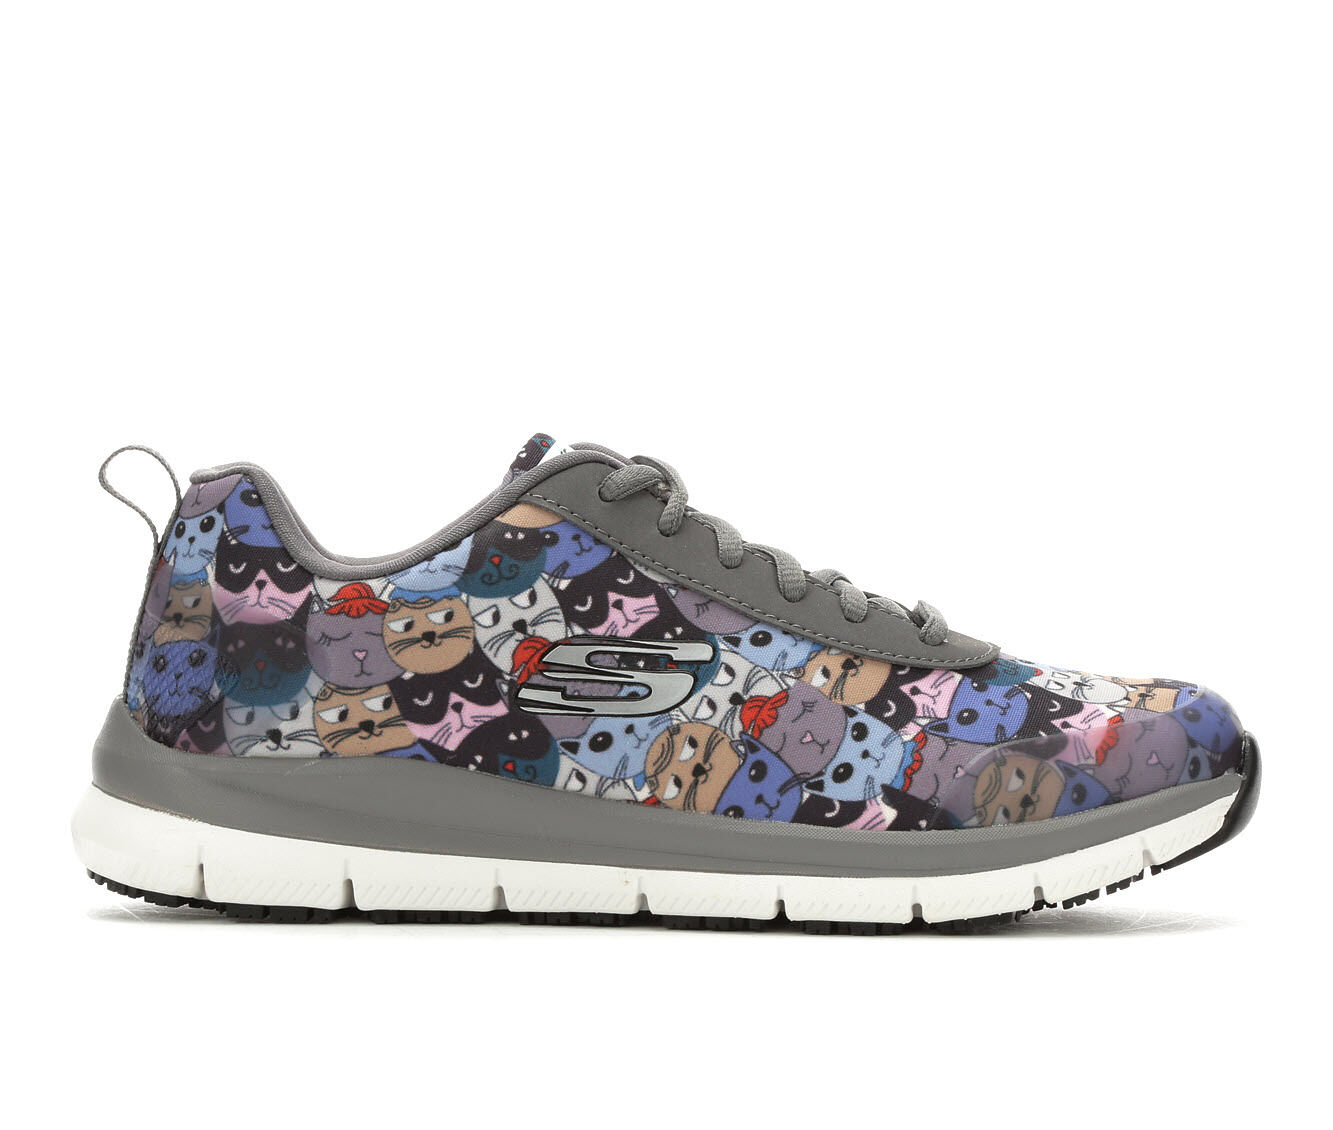 Fashionable Patterns Women's SKECHERS HEALTH Scatchey 77249 Safety Shoes Blue/Grey/Cat